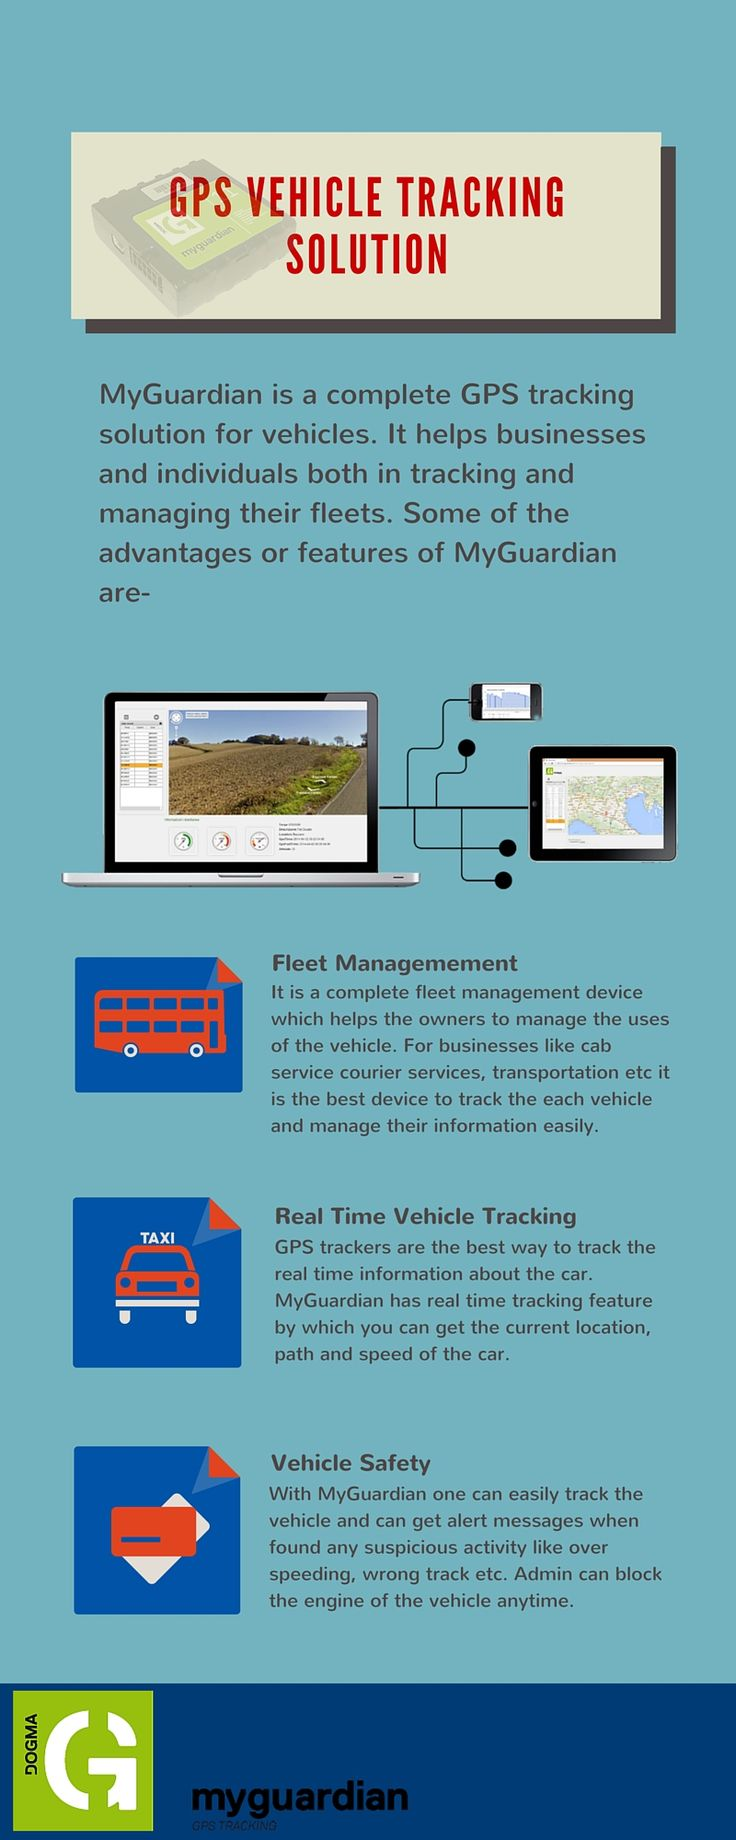 A Device Attached To The System Is Not Functioning Endearing 13 Best Gps Tracking And Fleet Management Images On Pinterest 2018